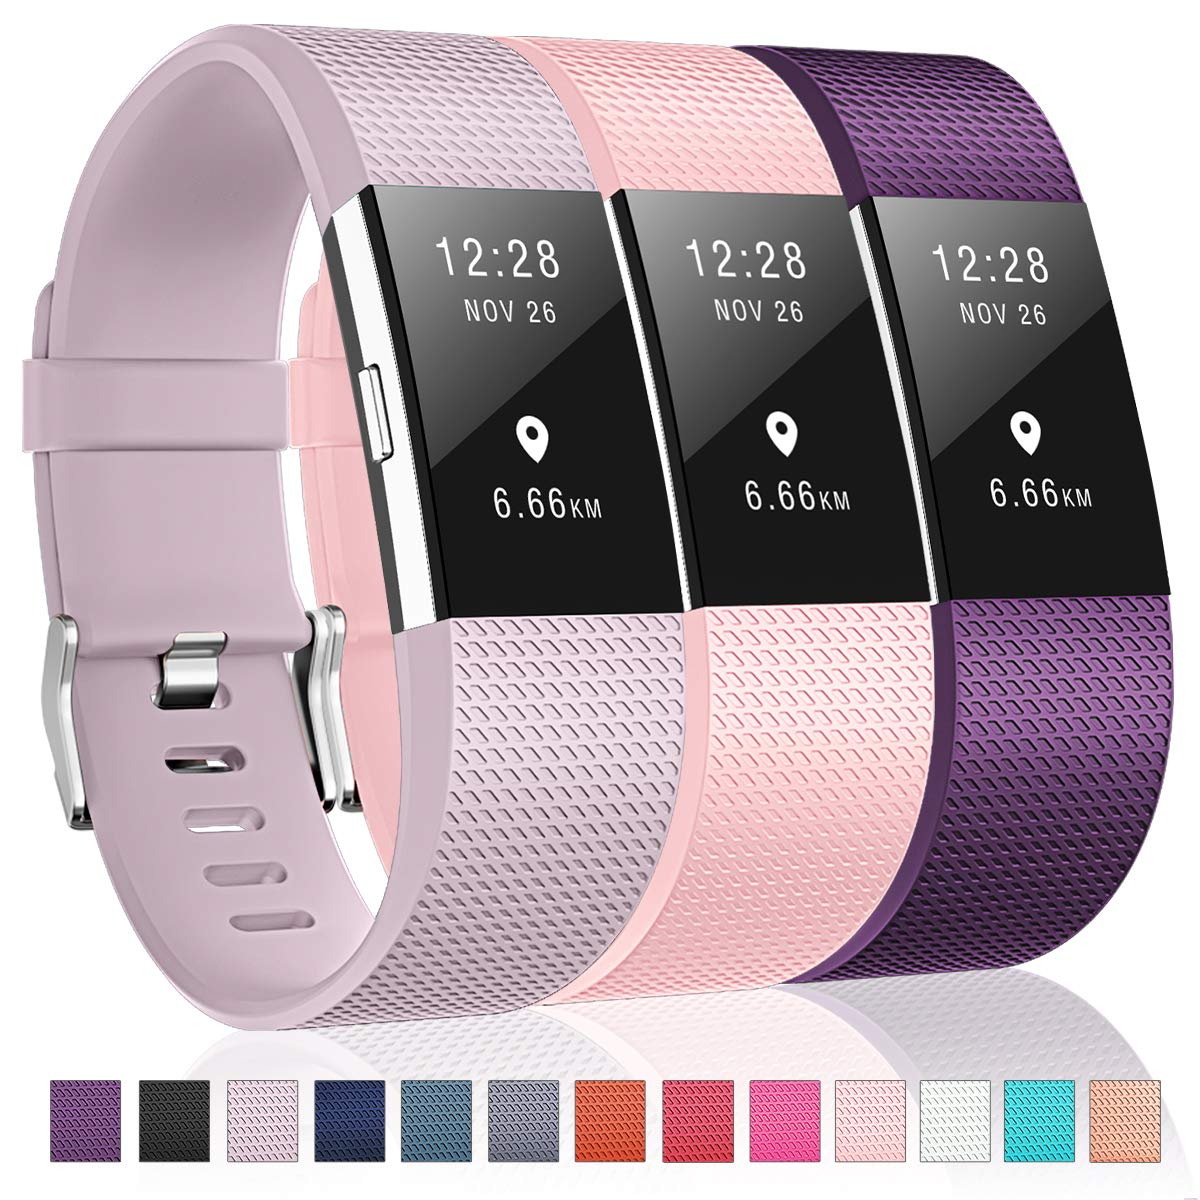 For Fitbit Charge 2バンド、Humenn交換アクセサリースポーツバンドfor Fitbit Charge 2 HR B07GR2MNF4 10,Lavender/Blush Pink/Plum Large( 6.7\